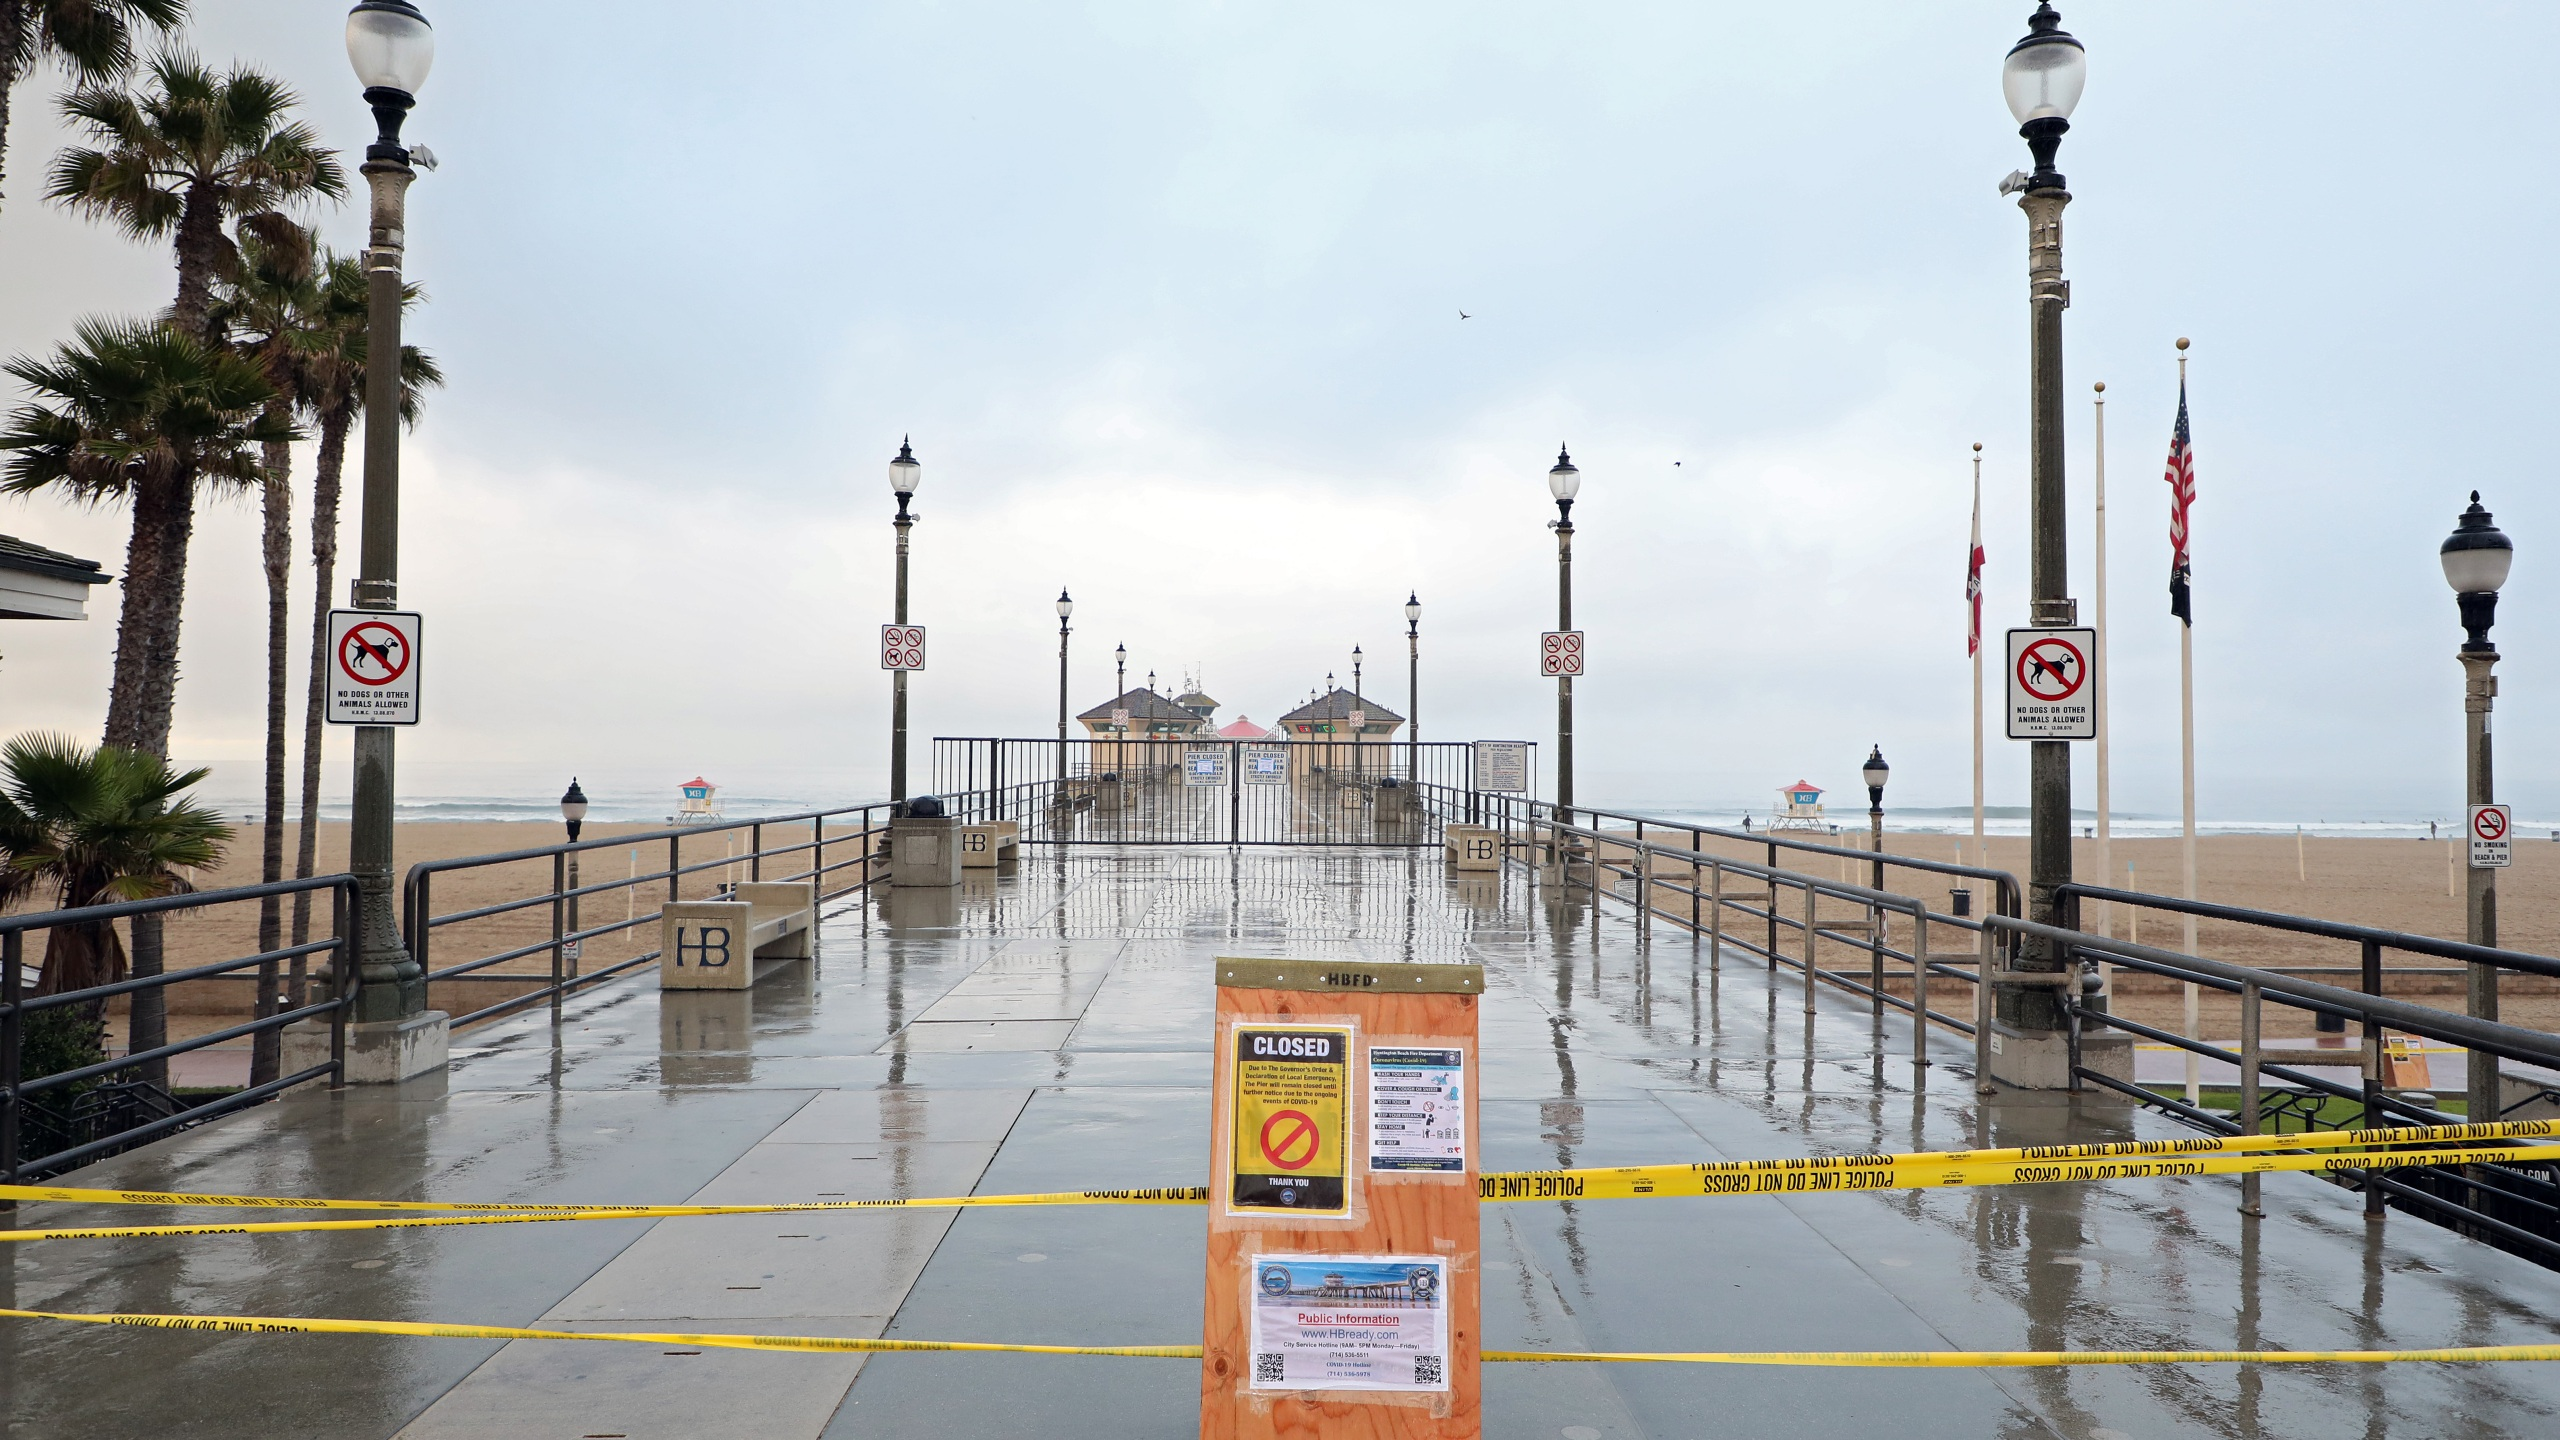 A sign explaining the closure of the Huntington Beach Pier amid the coronavirus outbreak is seen on March 24, 2020. (Credit: Michael Heiman / Getty Images)